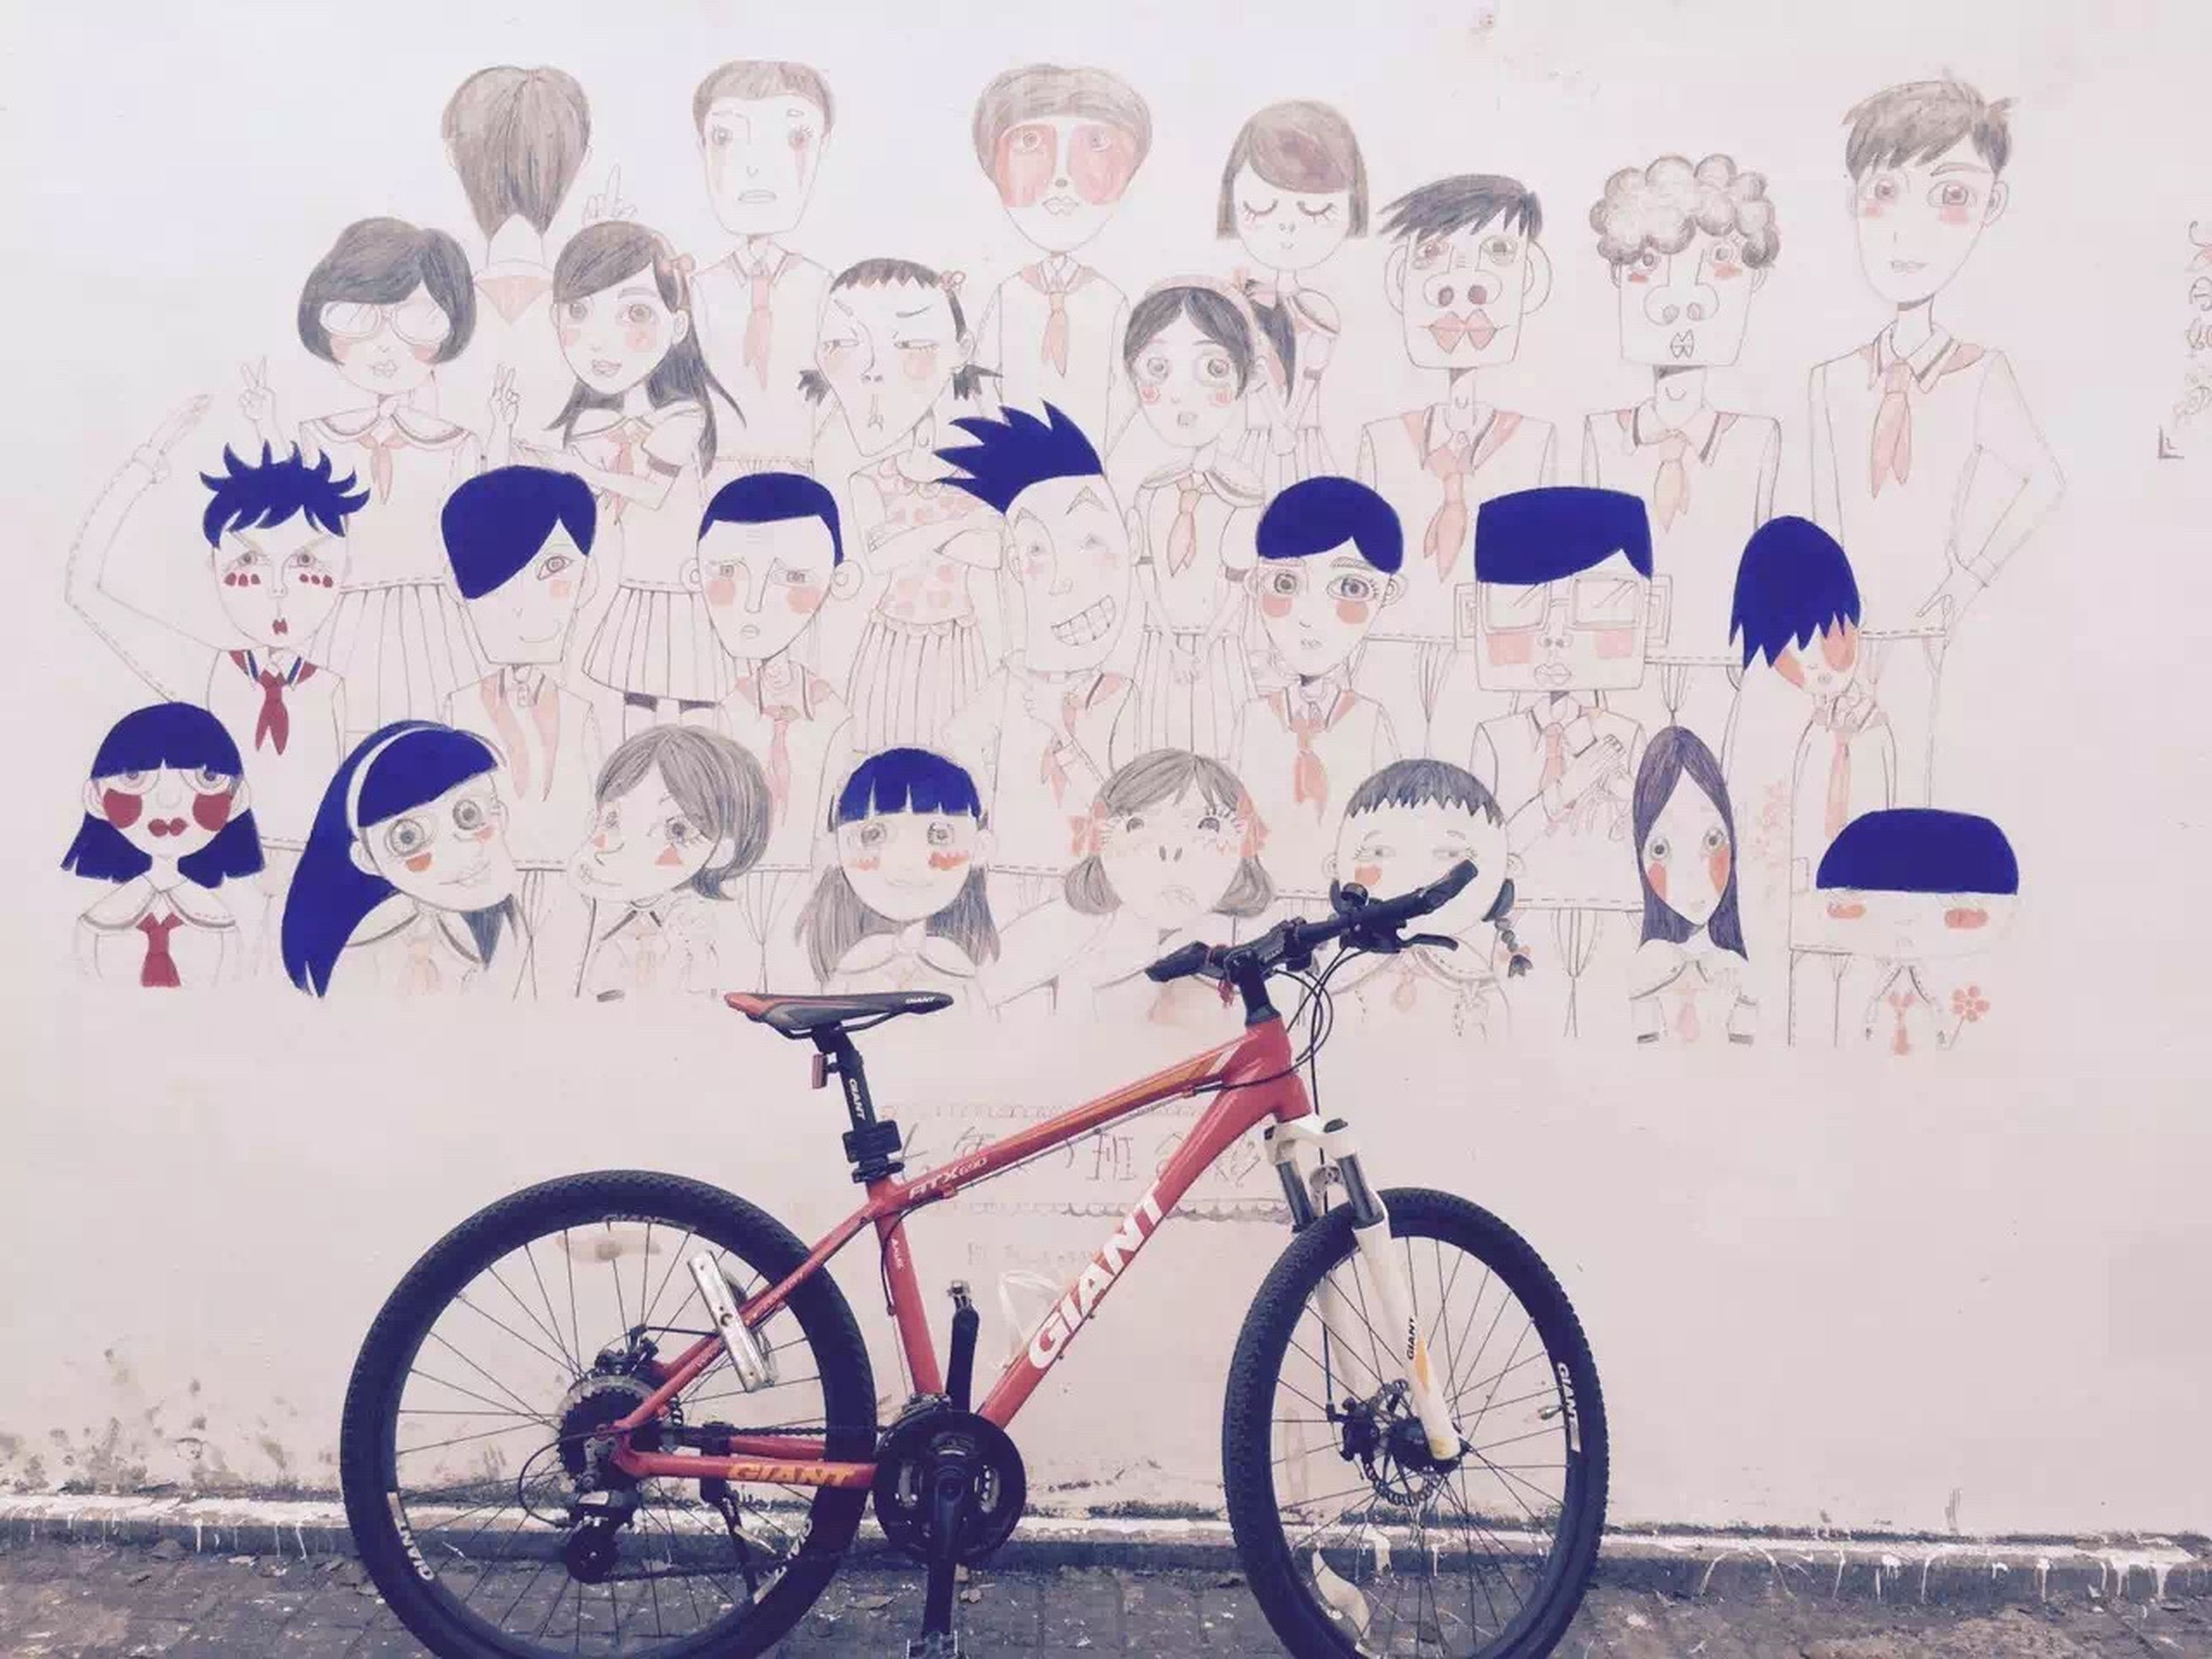 bicycle, transportation, land vehicle, mode of transport, stationary, parked, parking, wall - building feature, wheel, wall, cycle, leaning, day, graffiti, outdoors, no people, cart, street, built structure, text